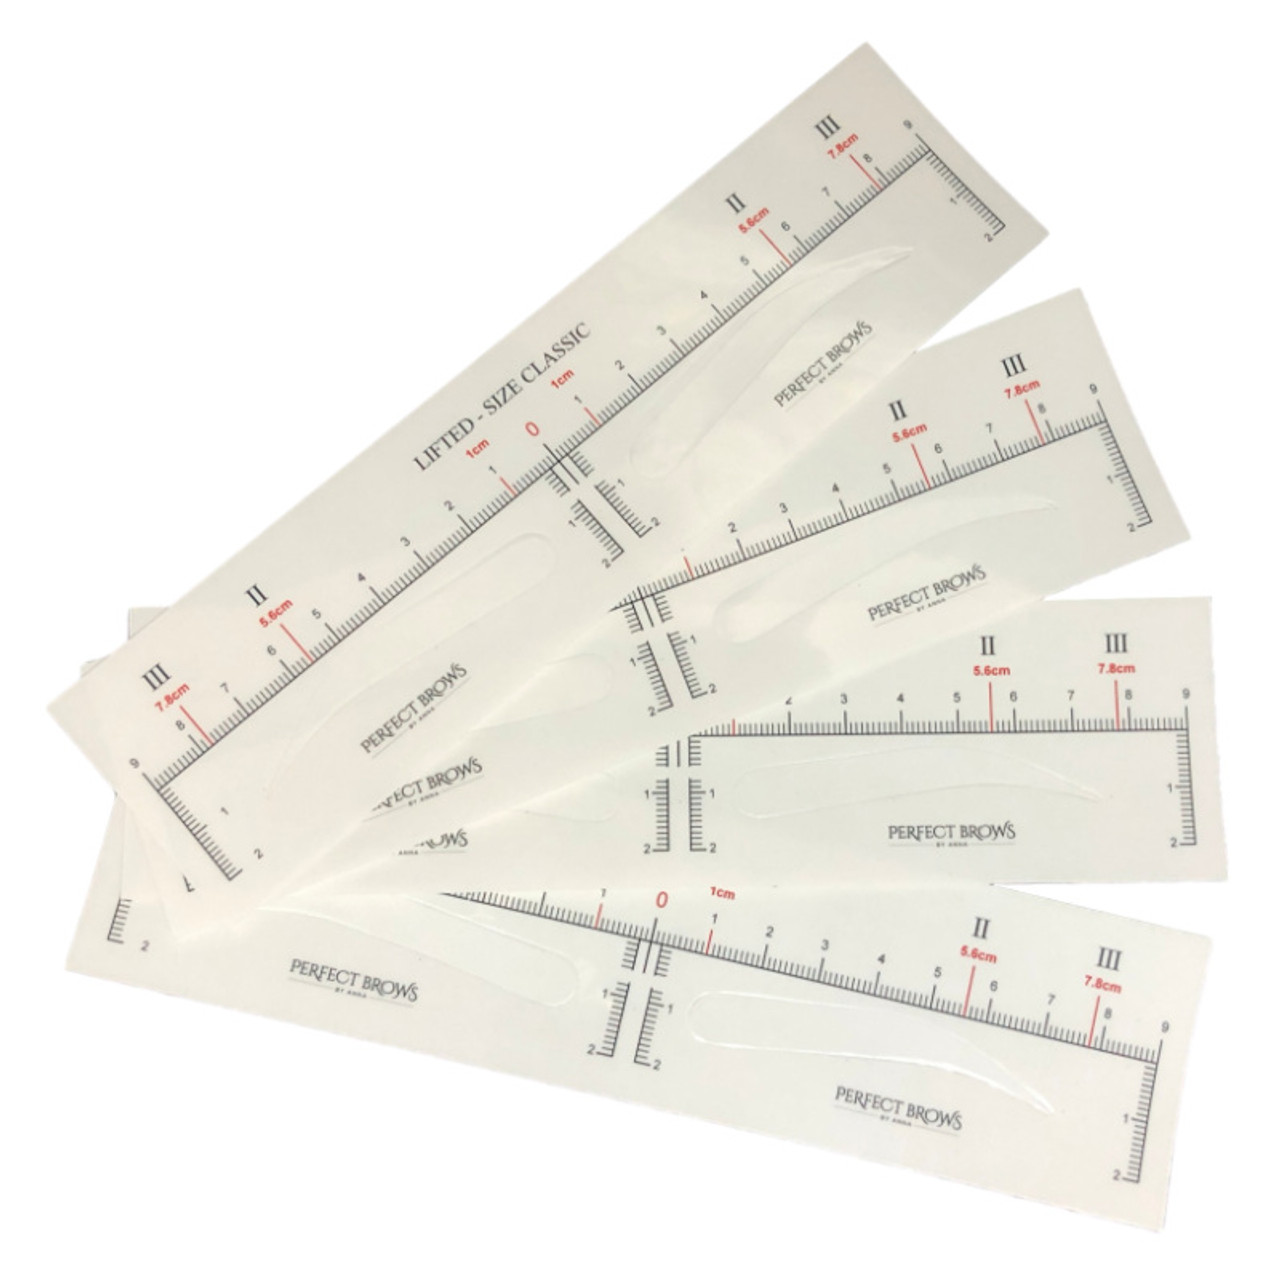 Permanent Makeup (PMU) Sticker Measuring Tool  4 Types